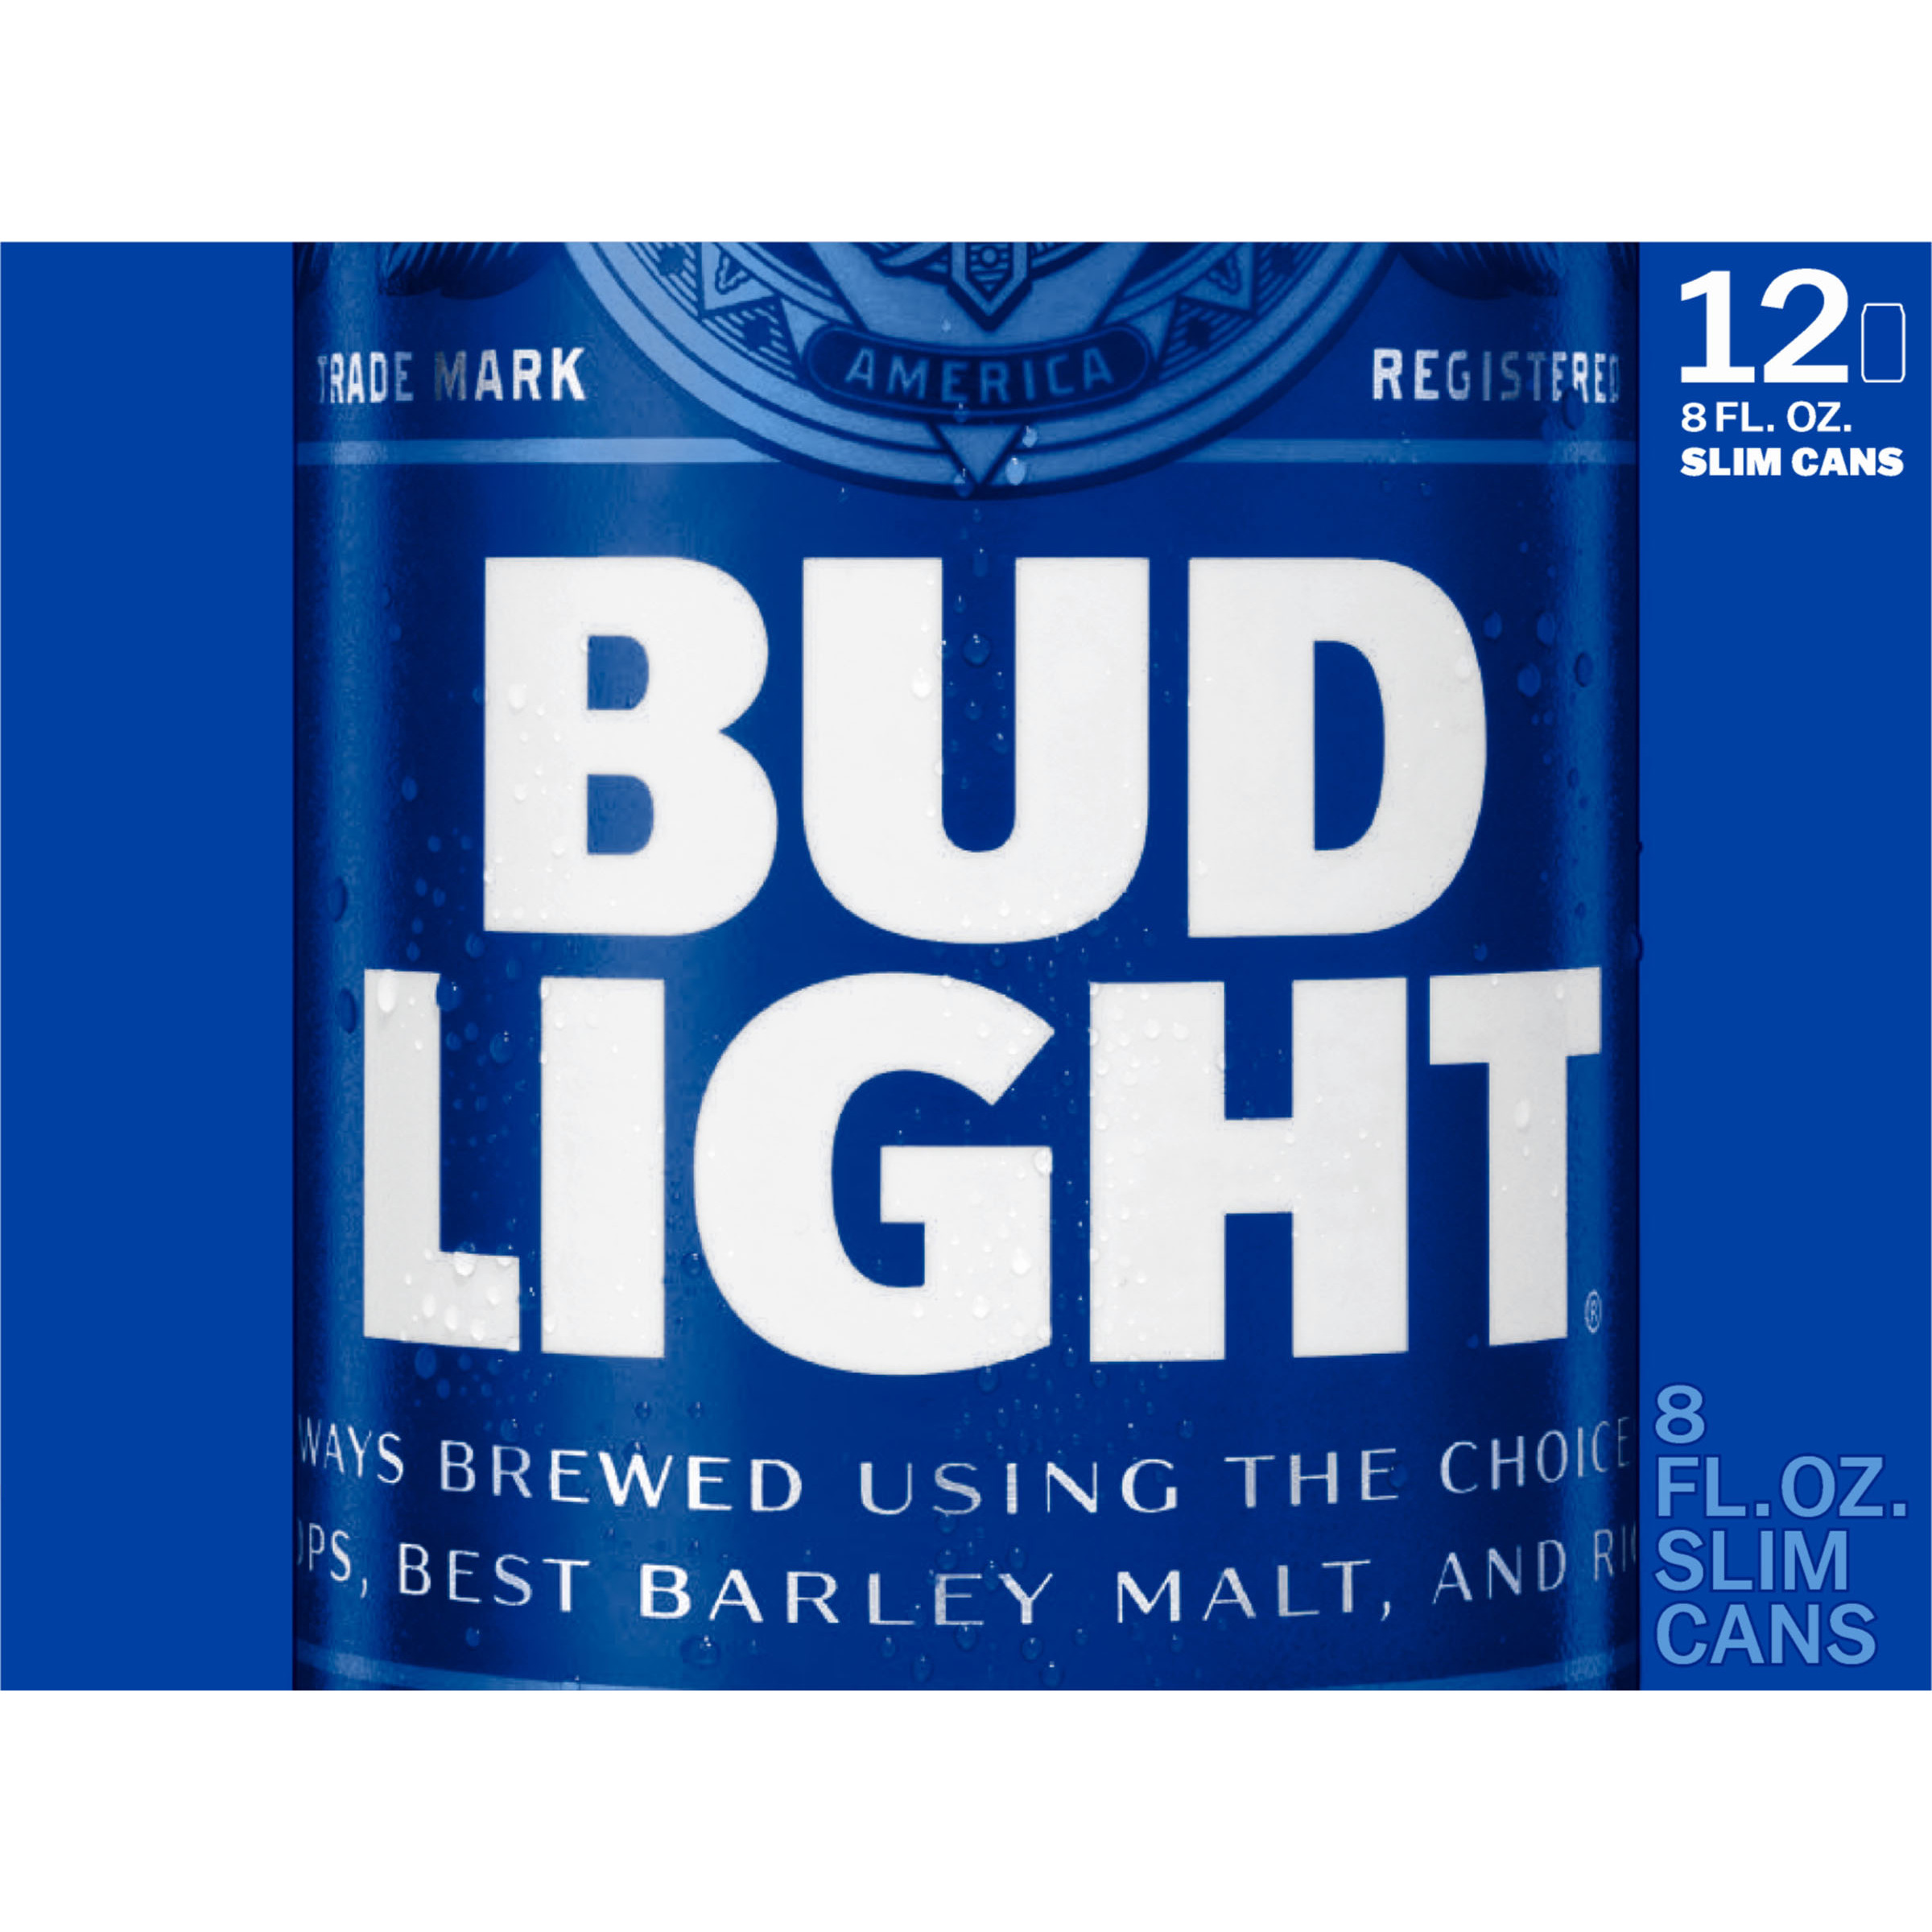 Bud Light Beer 12 8 Fl. Oz. Cans   Walmart.com Photo Gallery